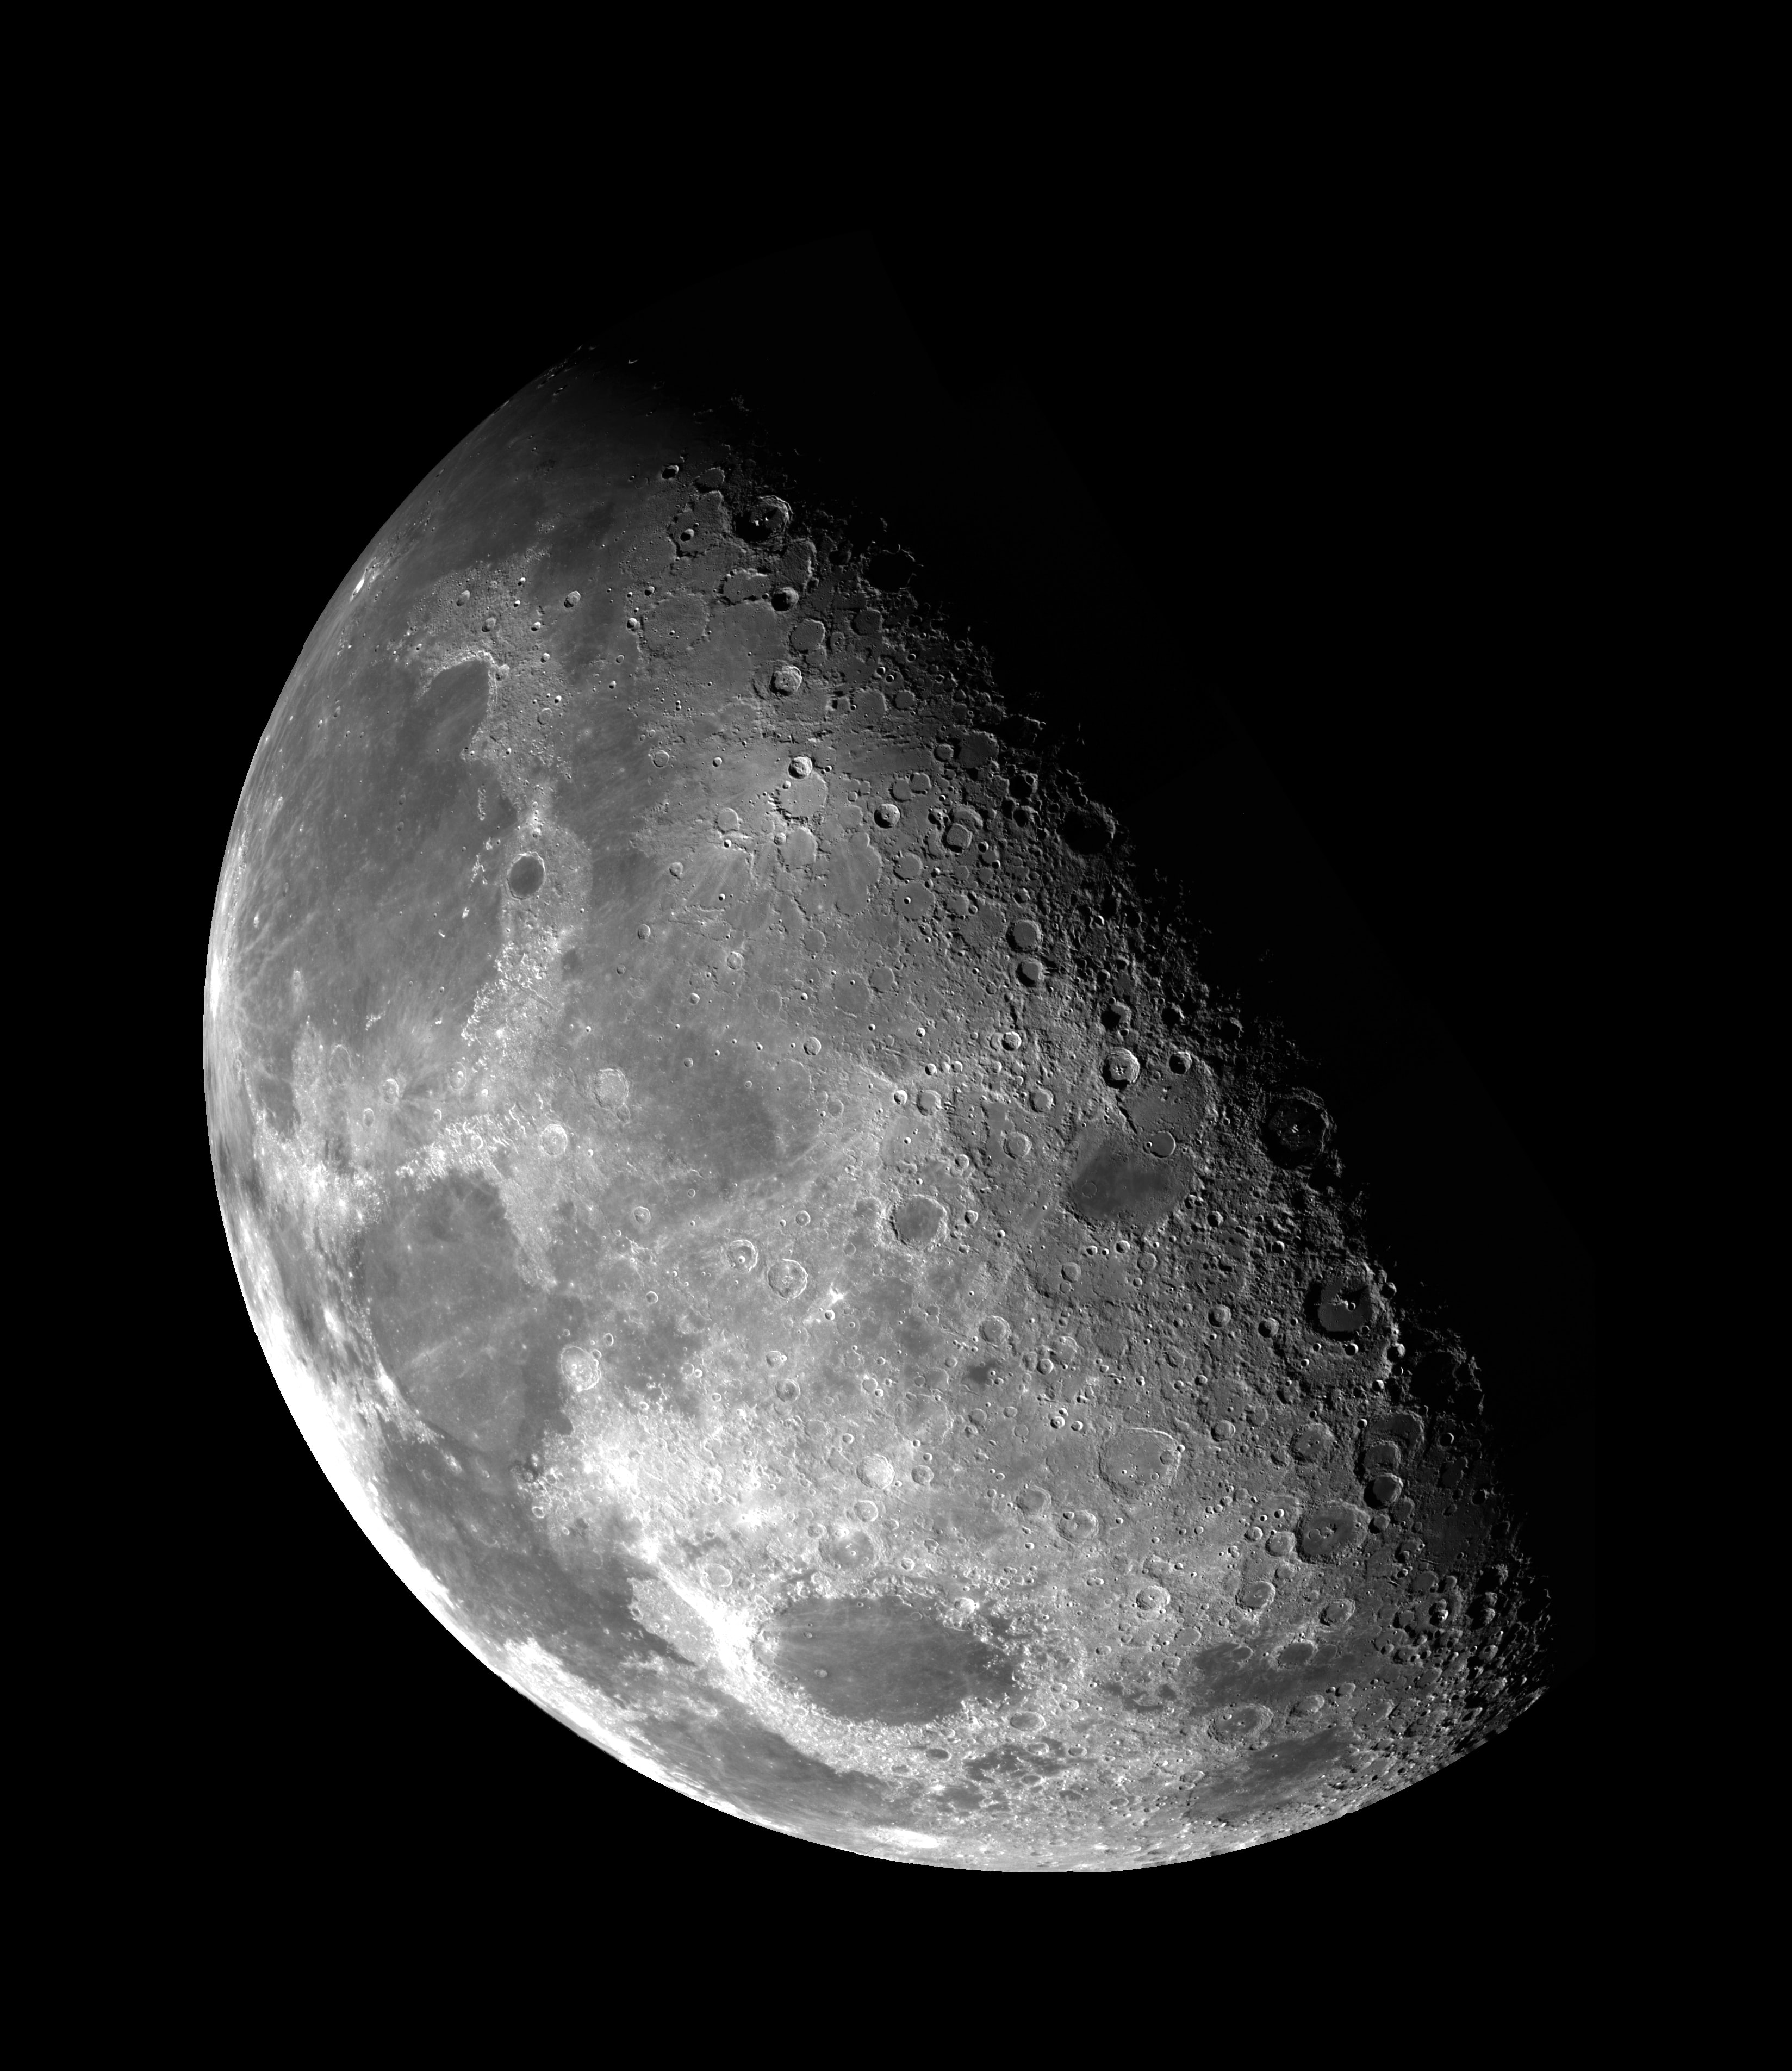 Close up of the moon craters seen through an astronomical telescope